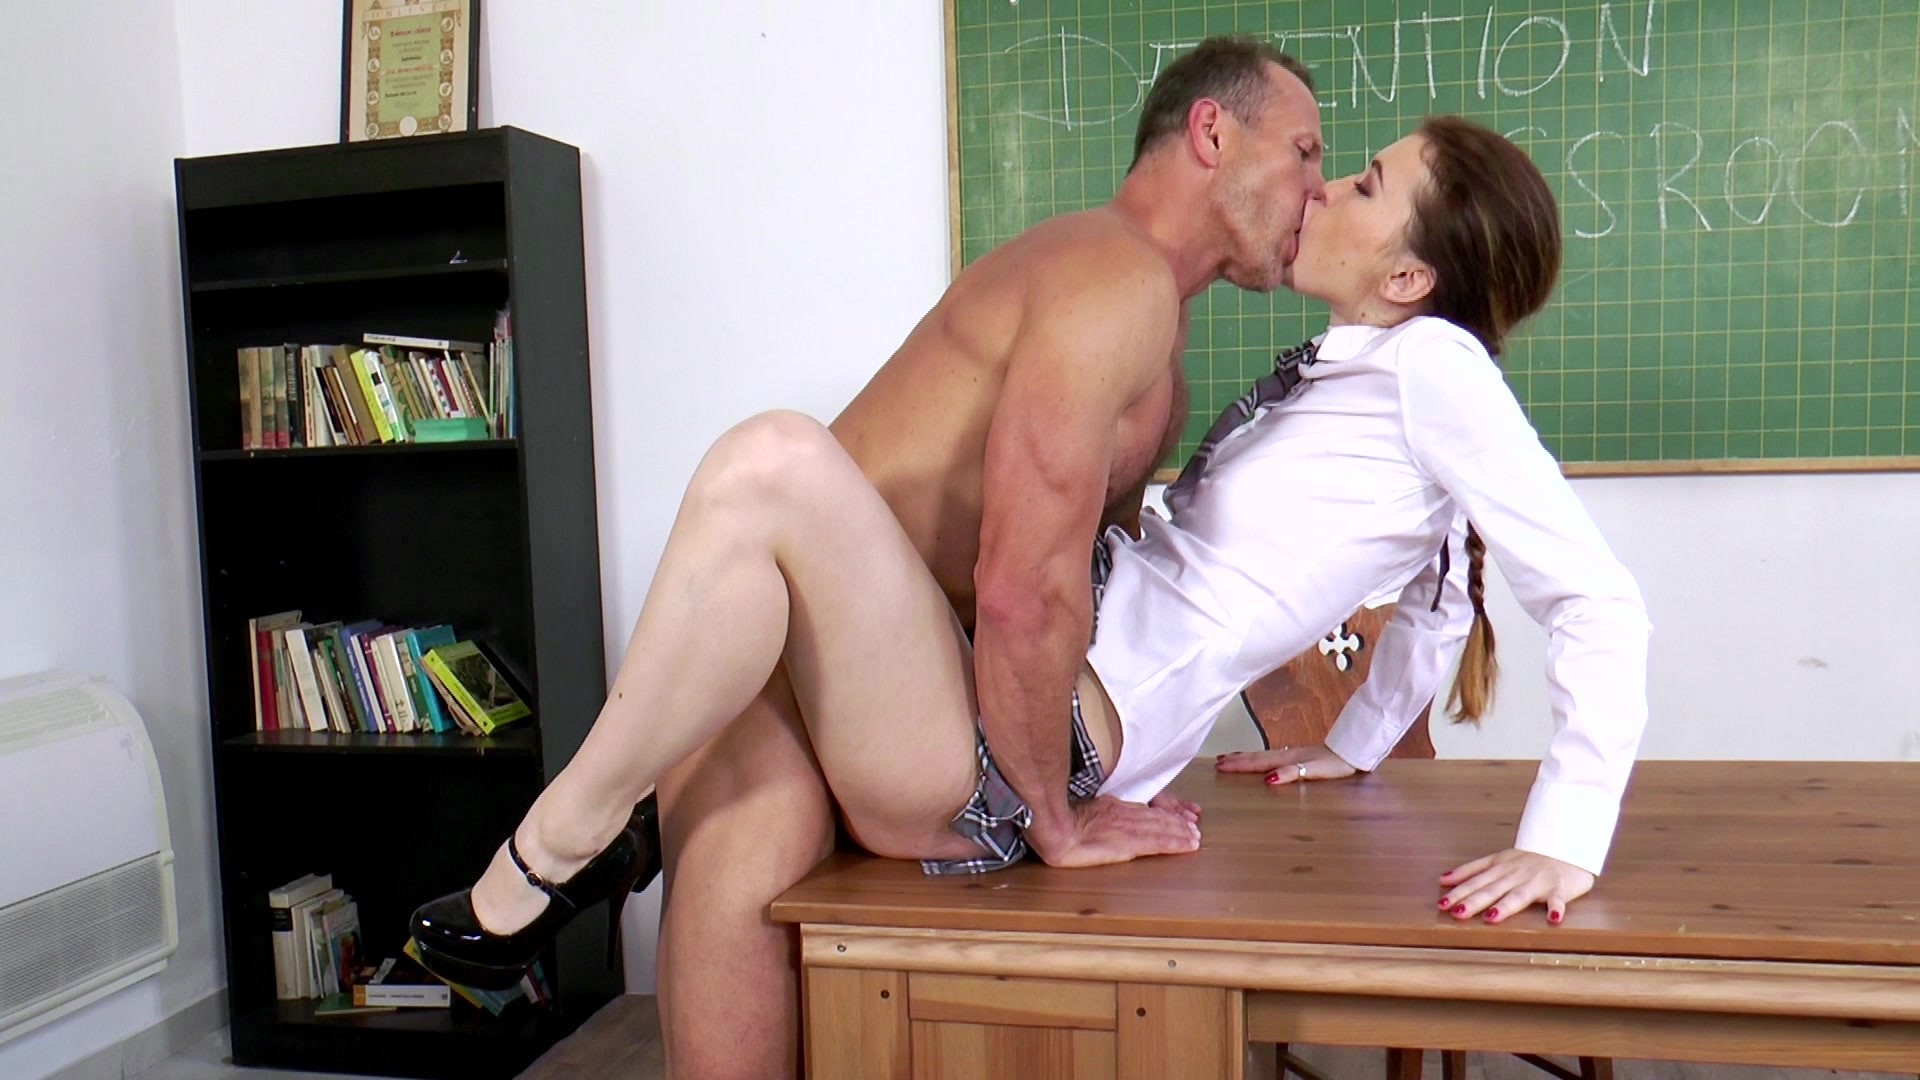 We present teachers force fucked by students free xxx galery